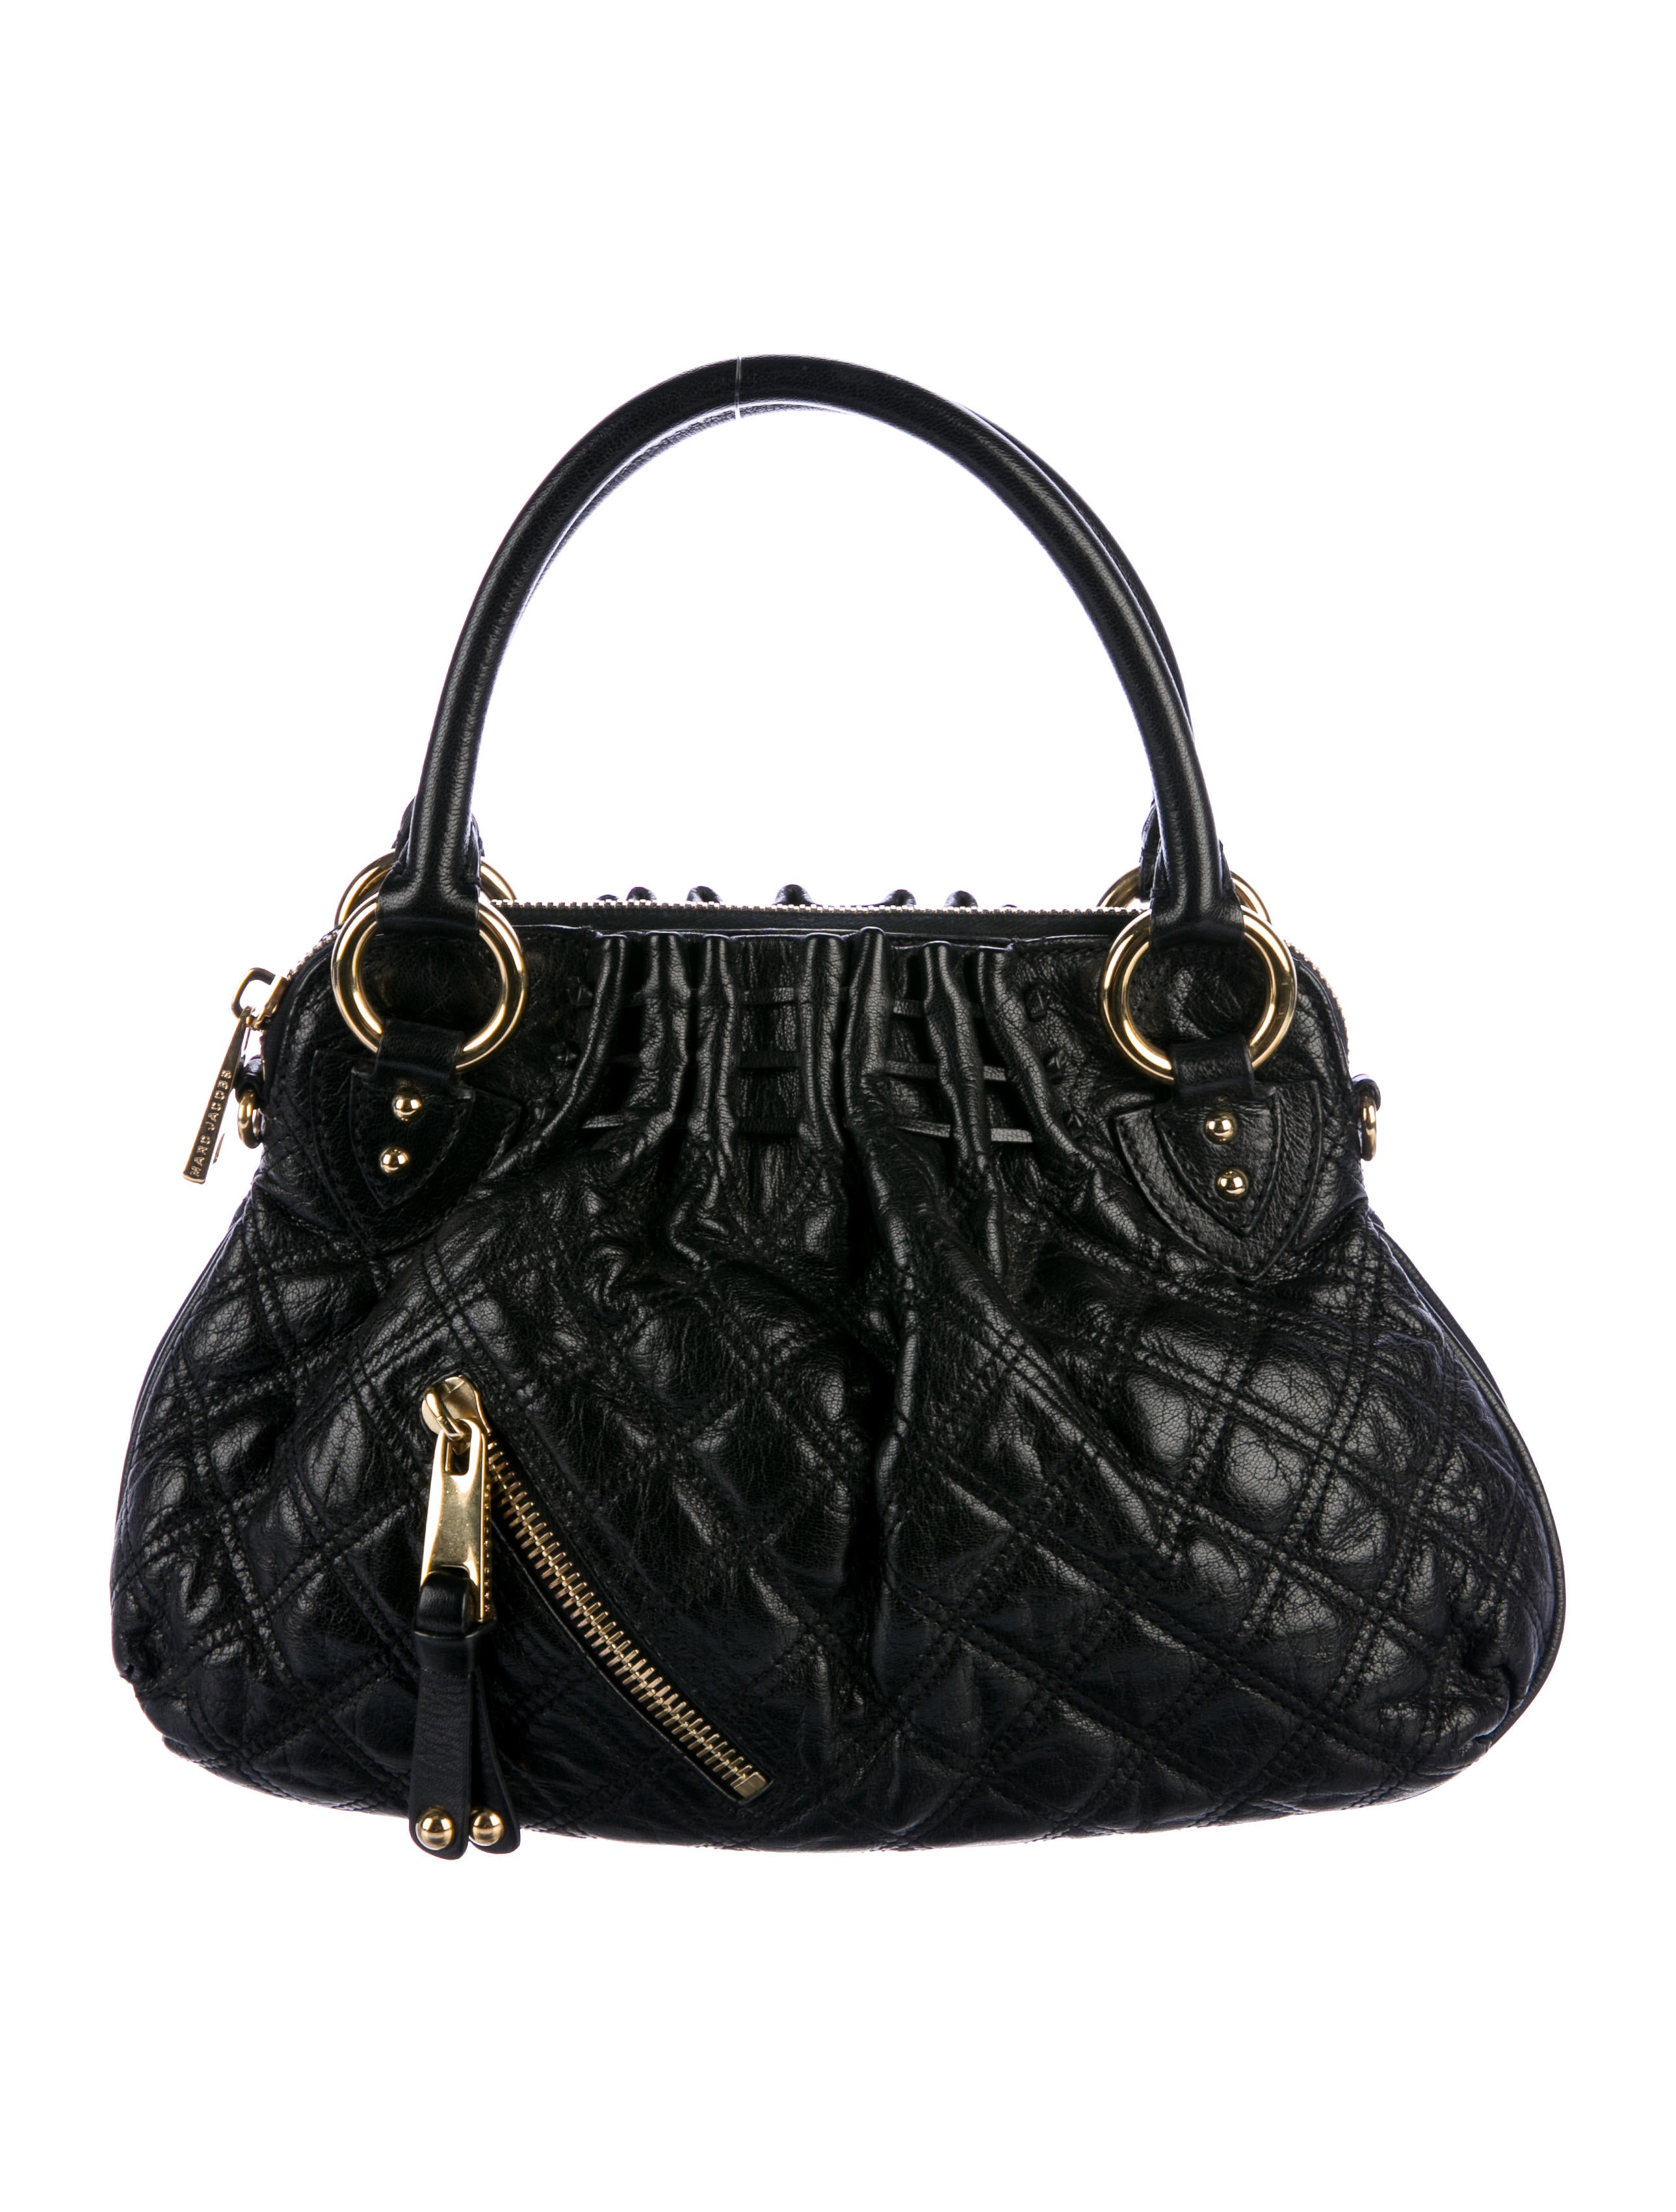 shoes quilt bag capretto bk xl quilted handbags leather all collections products bijou chlo drew chloe